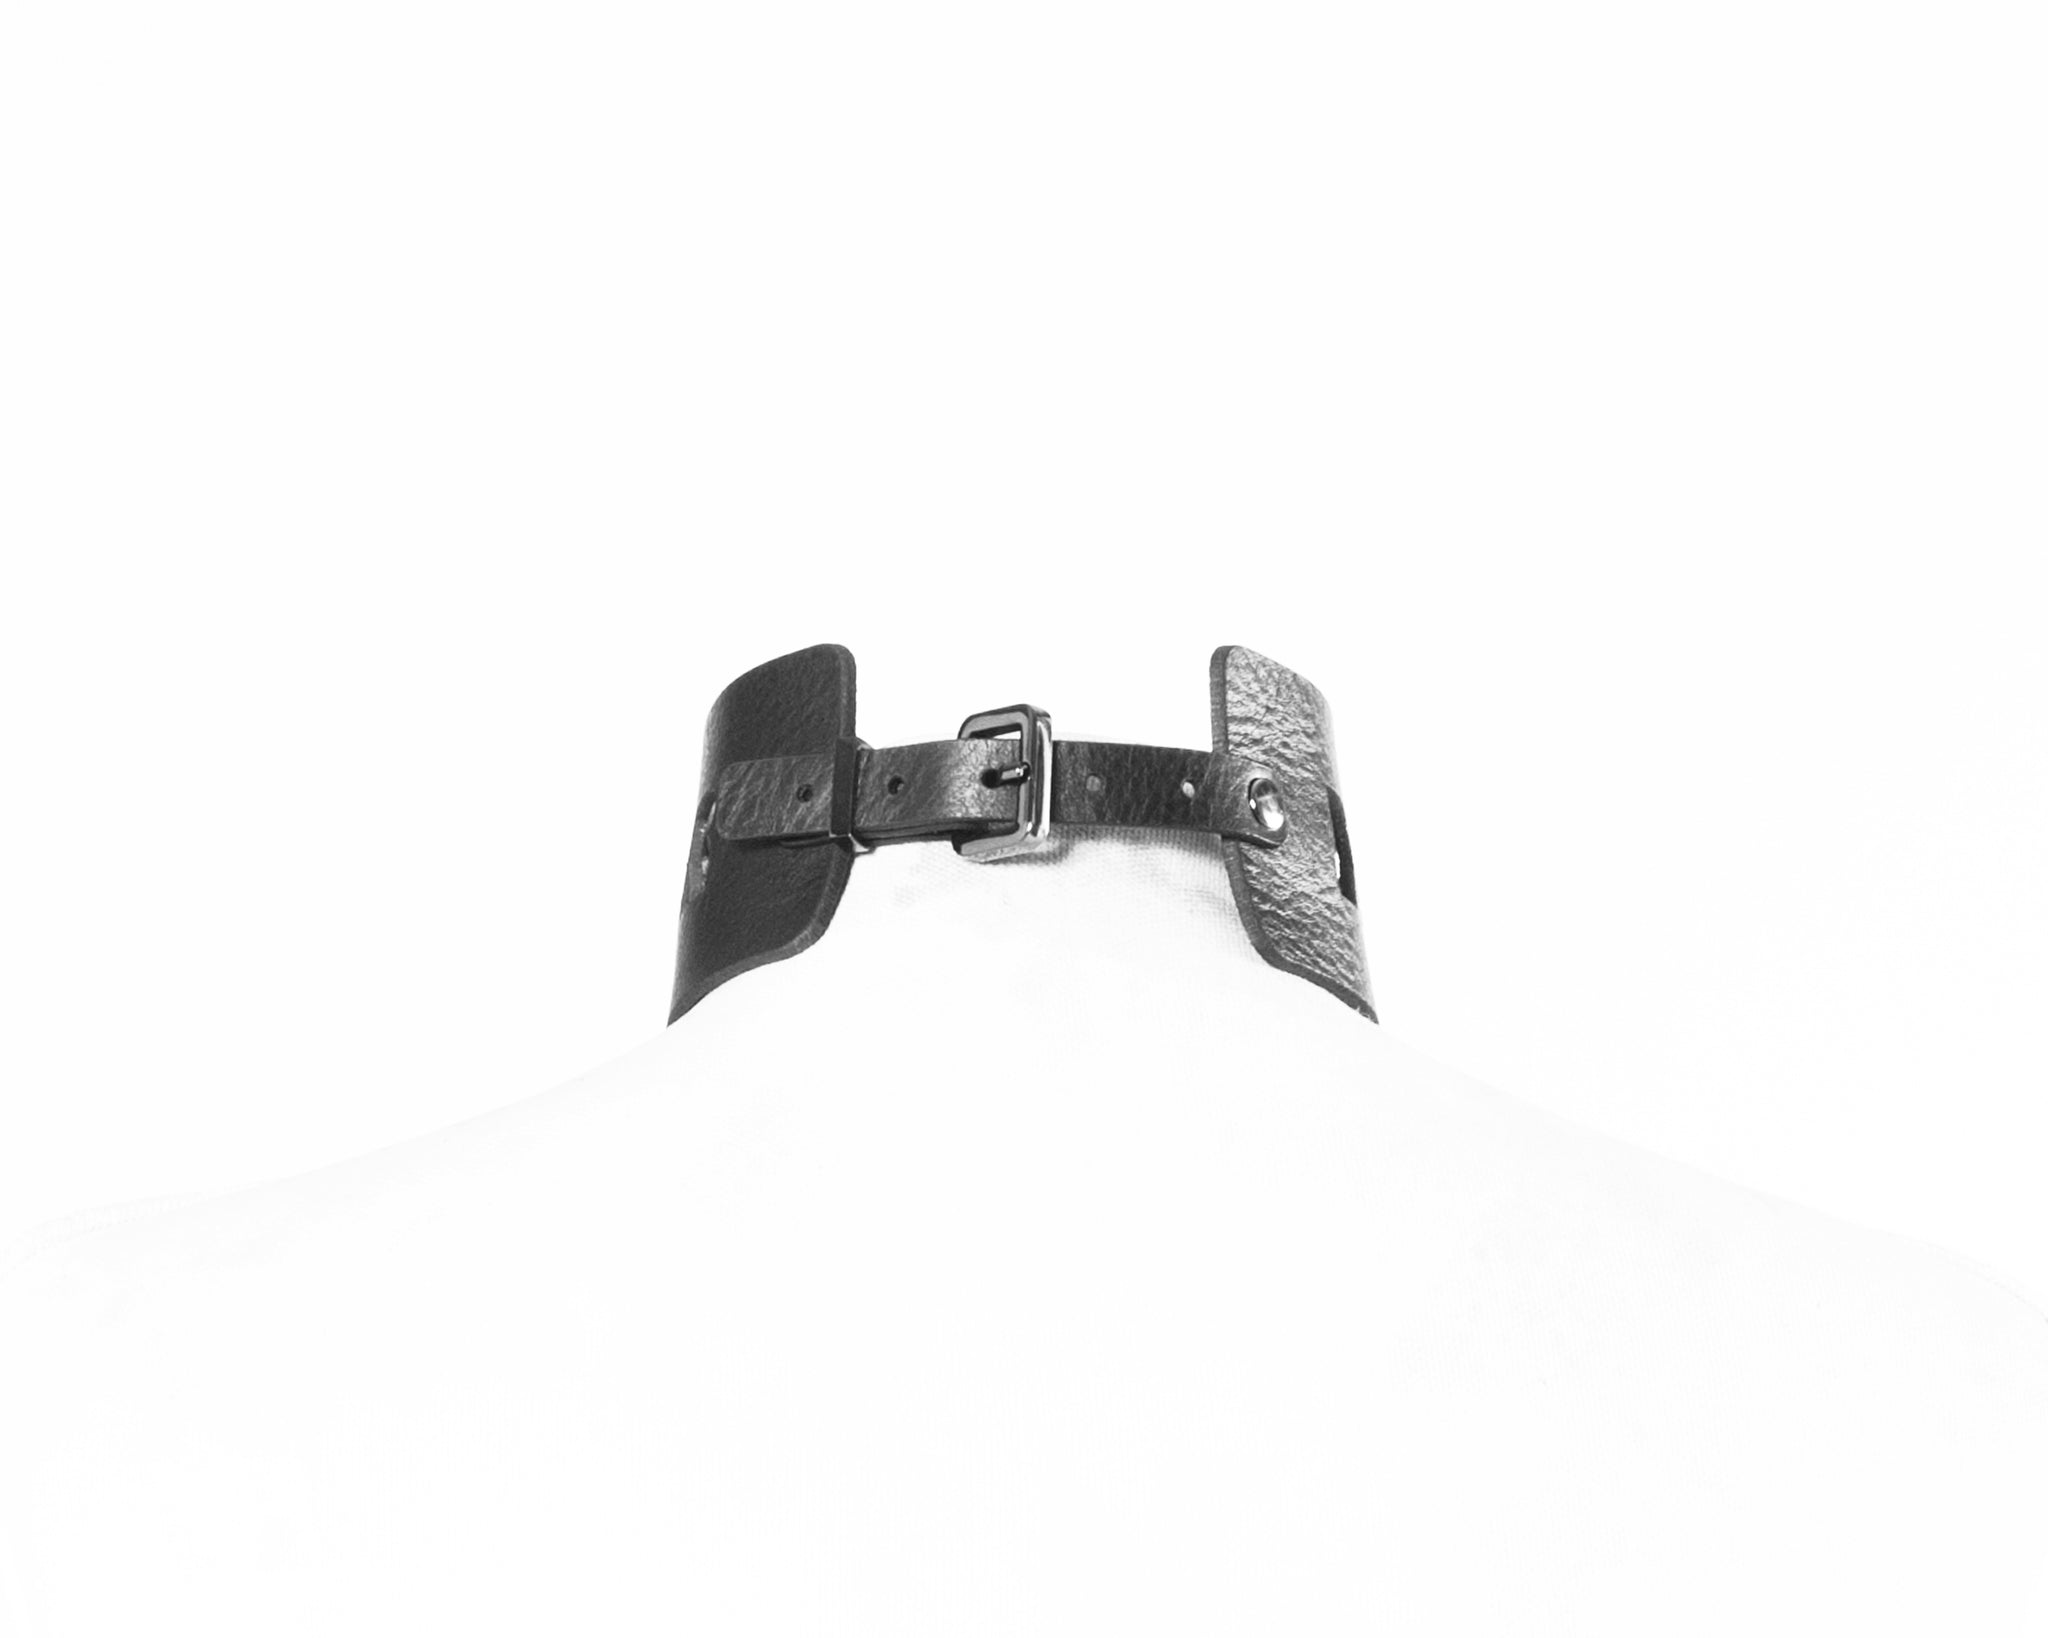 N56 Custom Leather Choker Collar - 0770shop